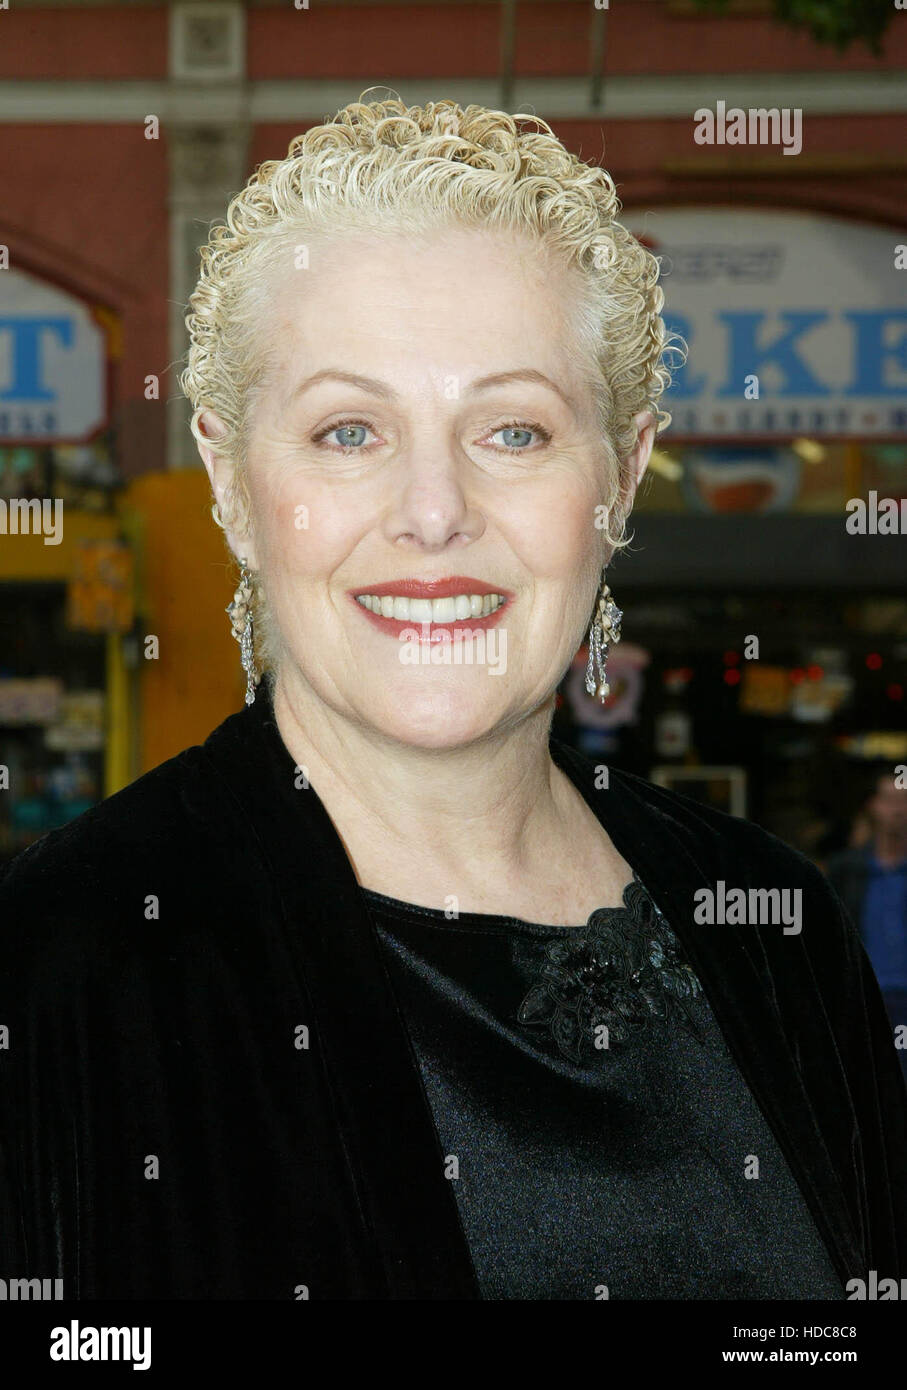 FBS08 20031213 HOLLYWOOD, UNITED STATES : Cast member Lynn Redgrave at  the  premiere of her film 'Peter Pan' - Stock Image